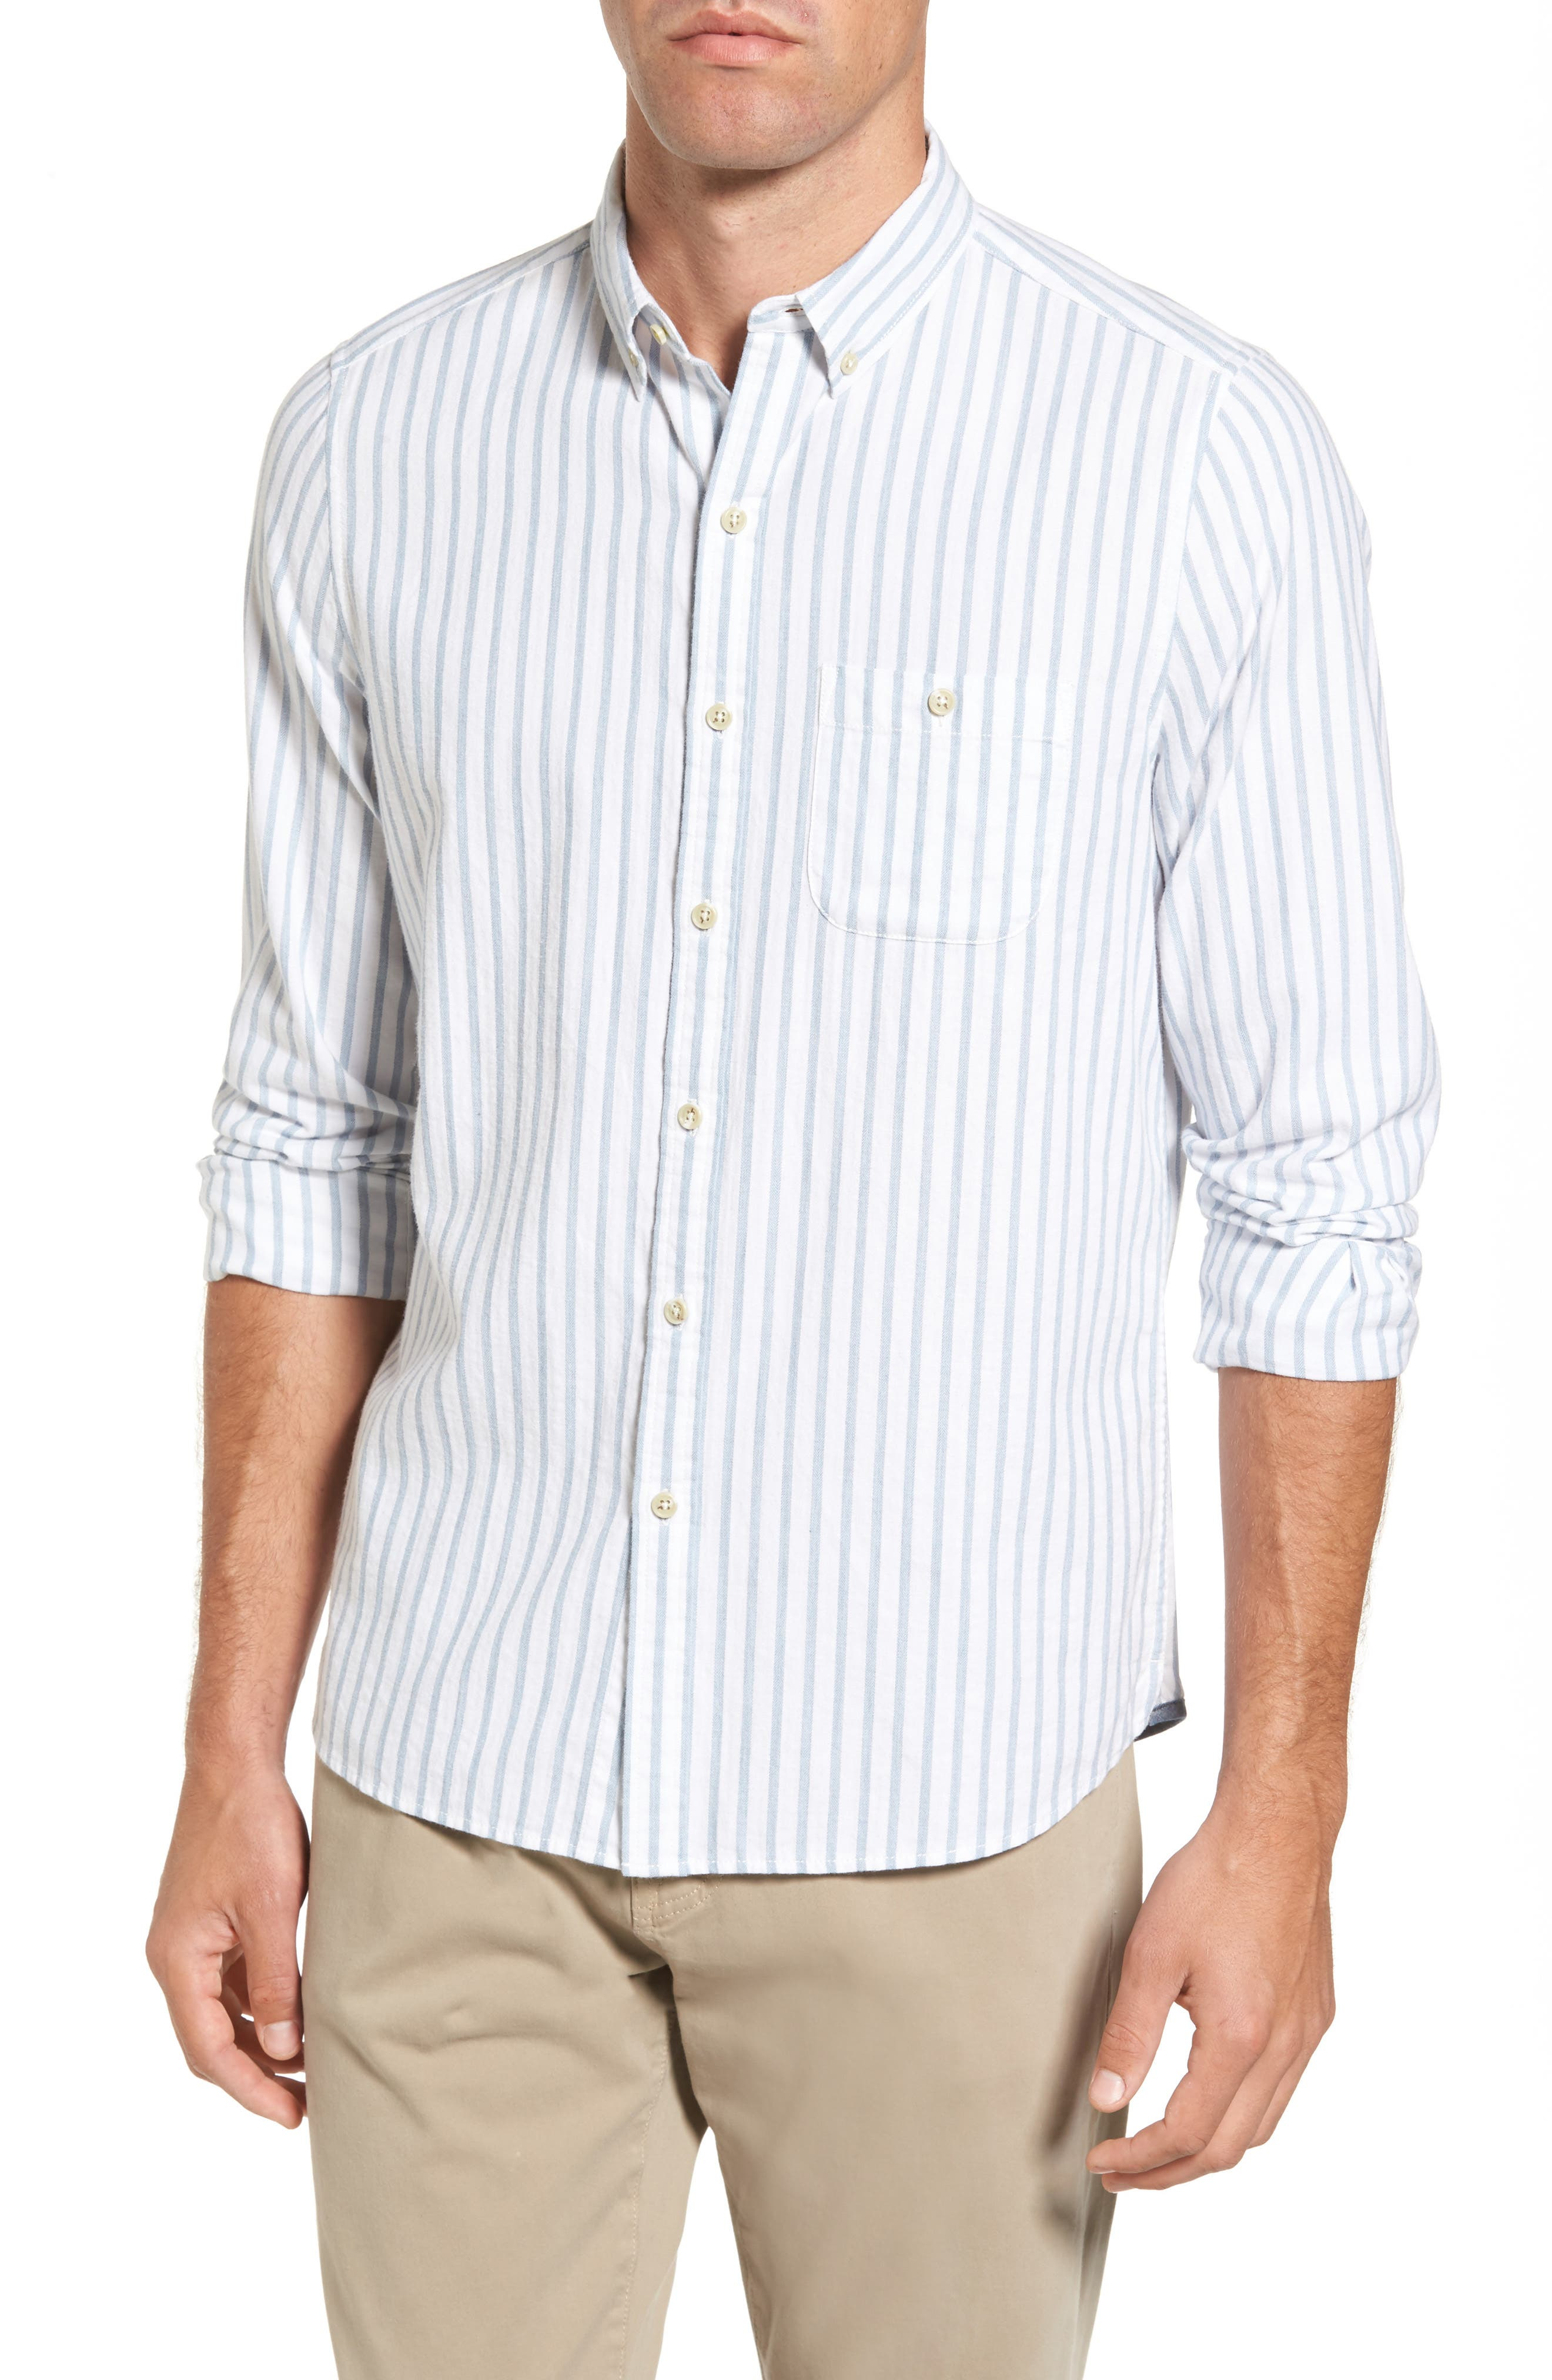 Main Image - Michael Bastian Trim Fit Vertical Stripe Sport Shirt